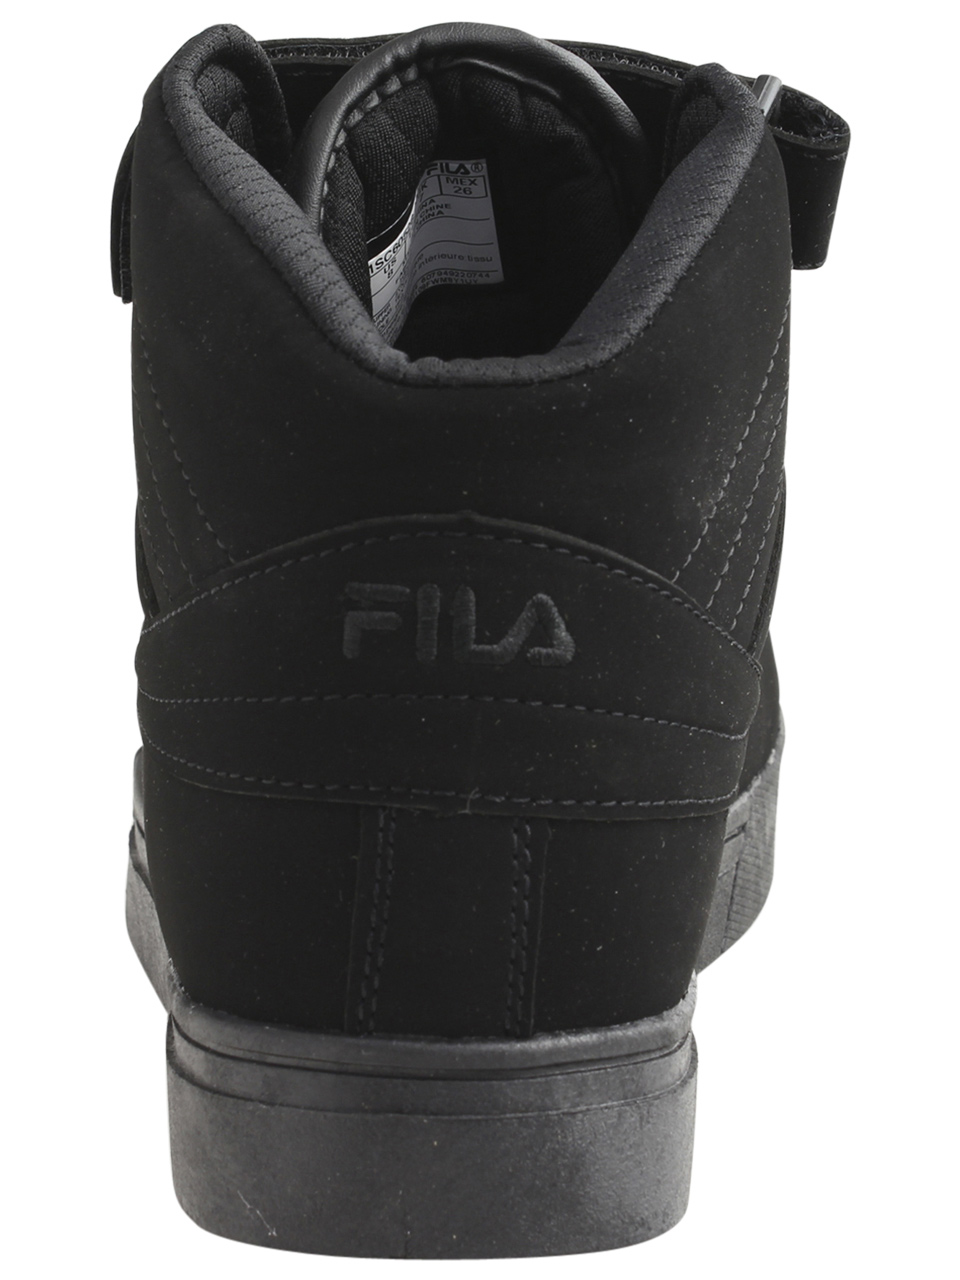 Fila-Men-039-s-Vulc-13-Mid-Plus-Sneakers-Shoes thumbnail 11